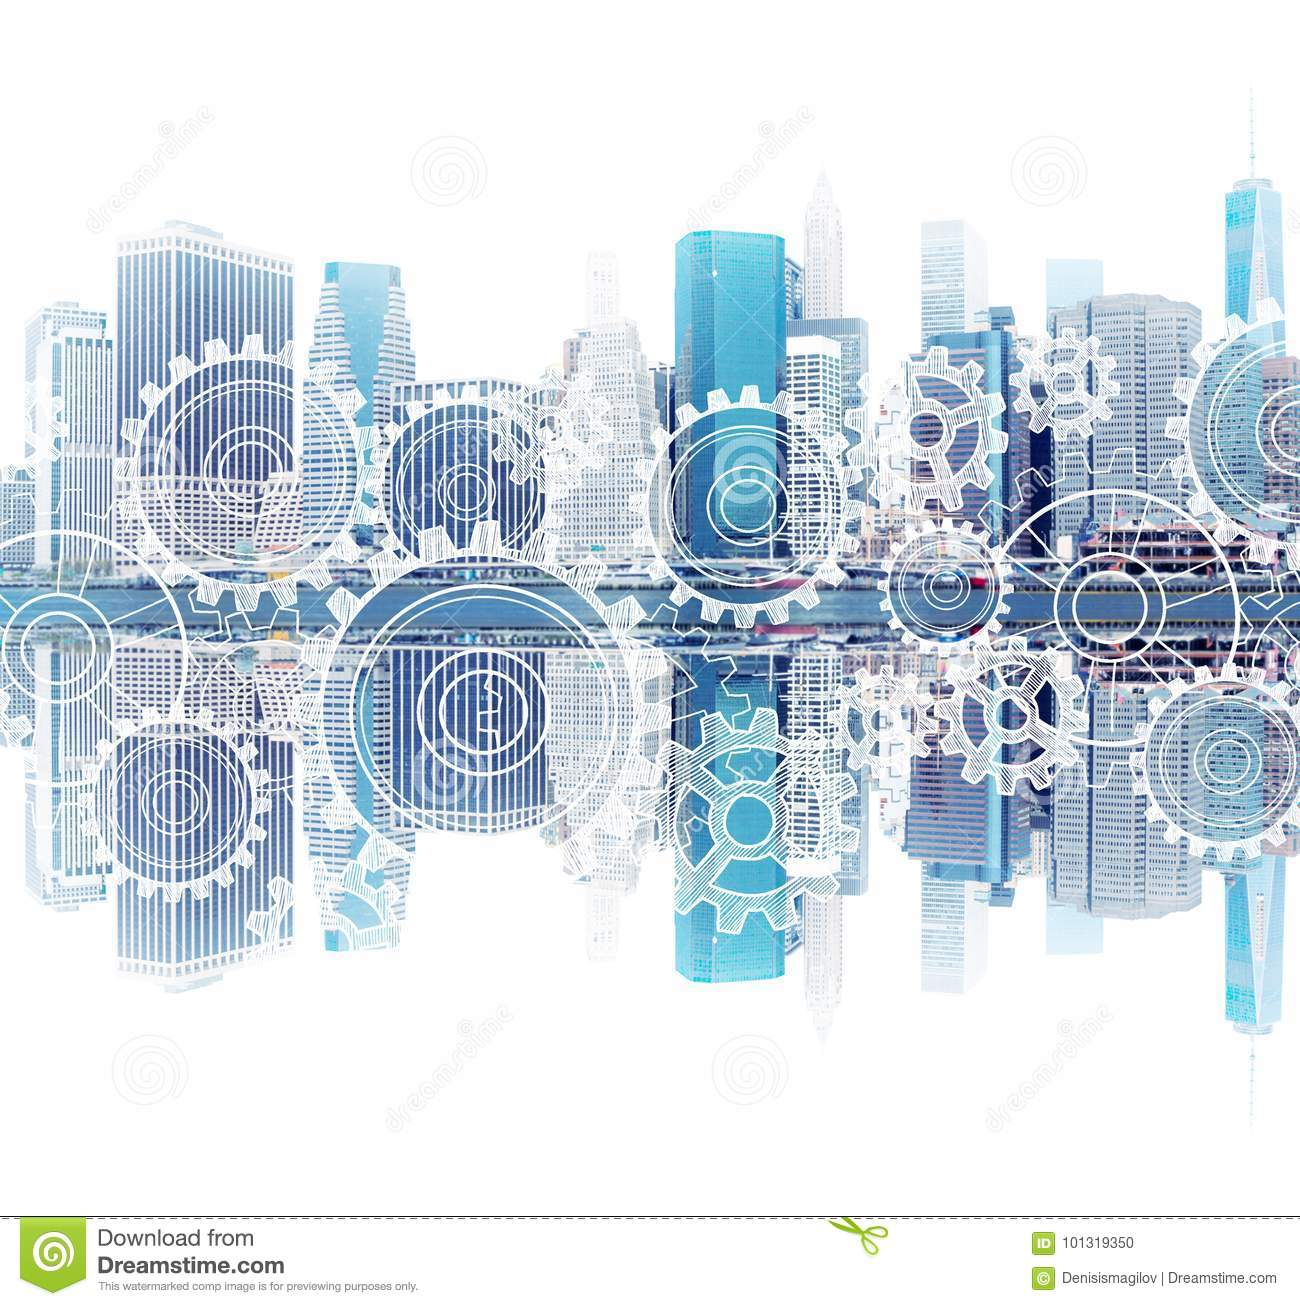 New York cityscape and its reflection, gears